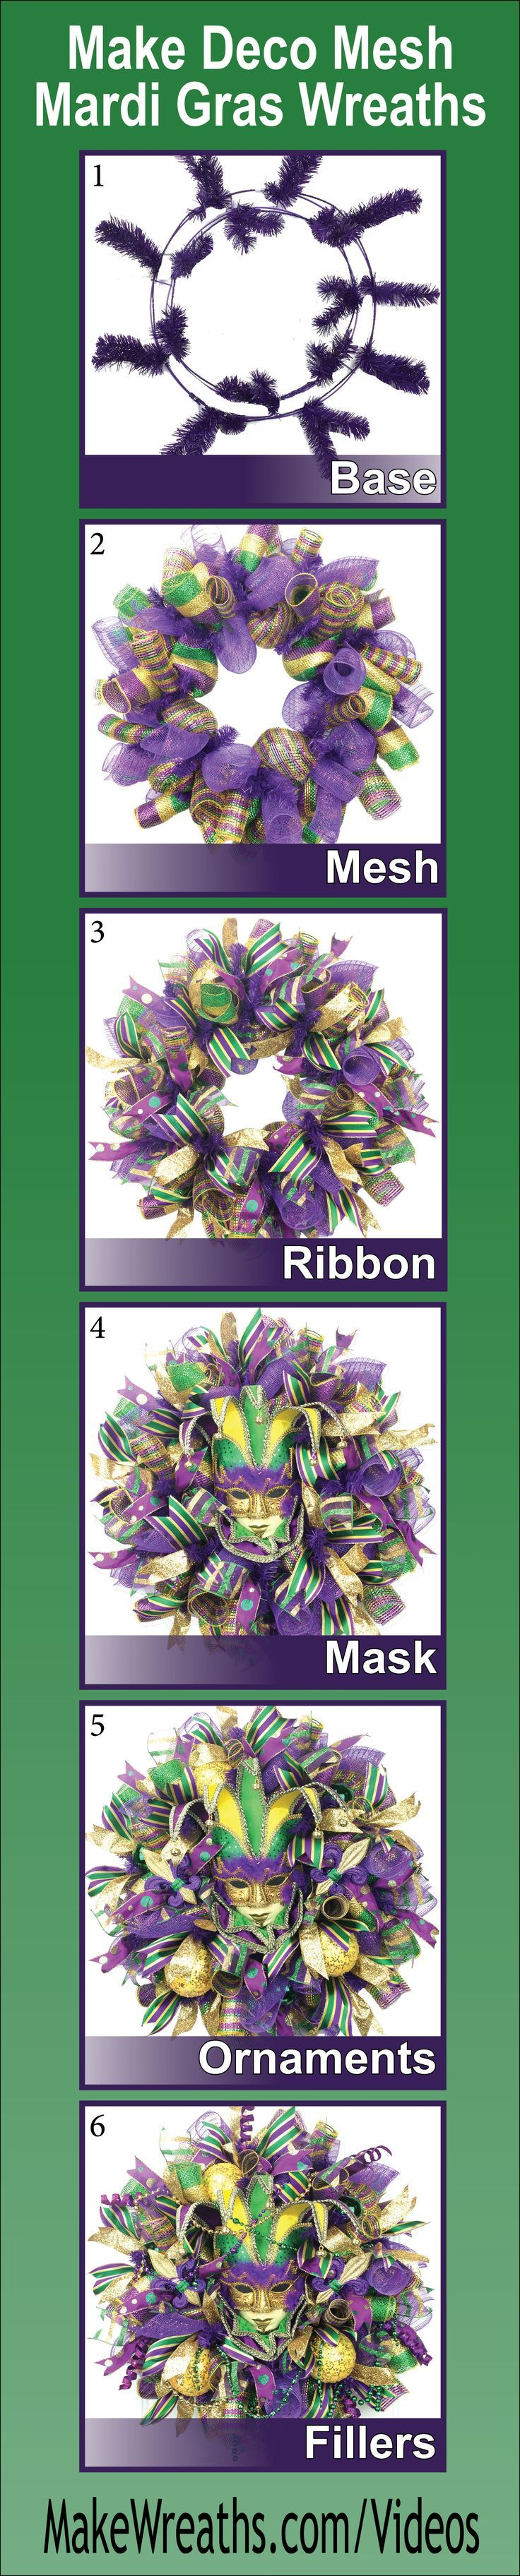 """""""SAVE MONEY AND MAKE YOUR OWN!...Learn step-by-step how to make SPECTACULAR Deco Mesh Mardi Gras Wreaths. Learn to make a perfect base using THREE types of mesh, add ribbon, masks, ornaments and throw beads.  List of supplies and vendors included. Click t"""